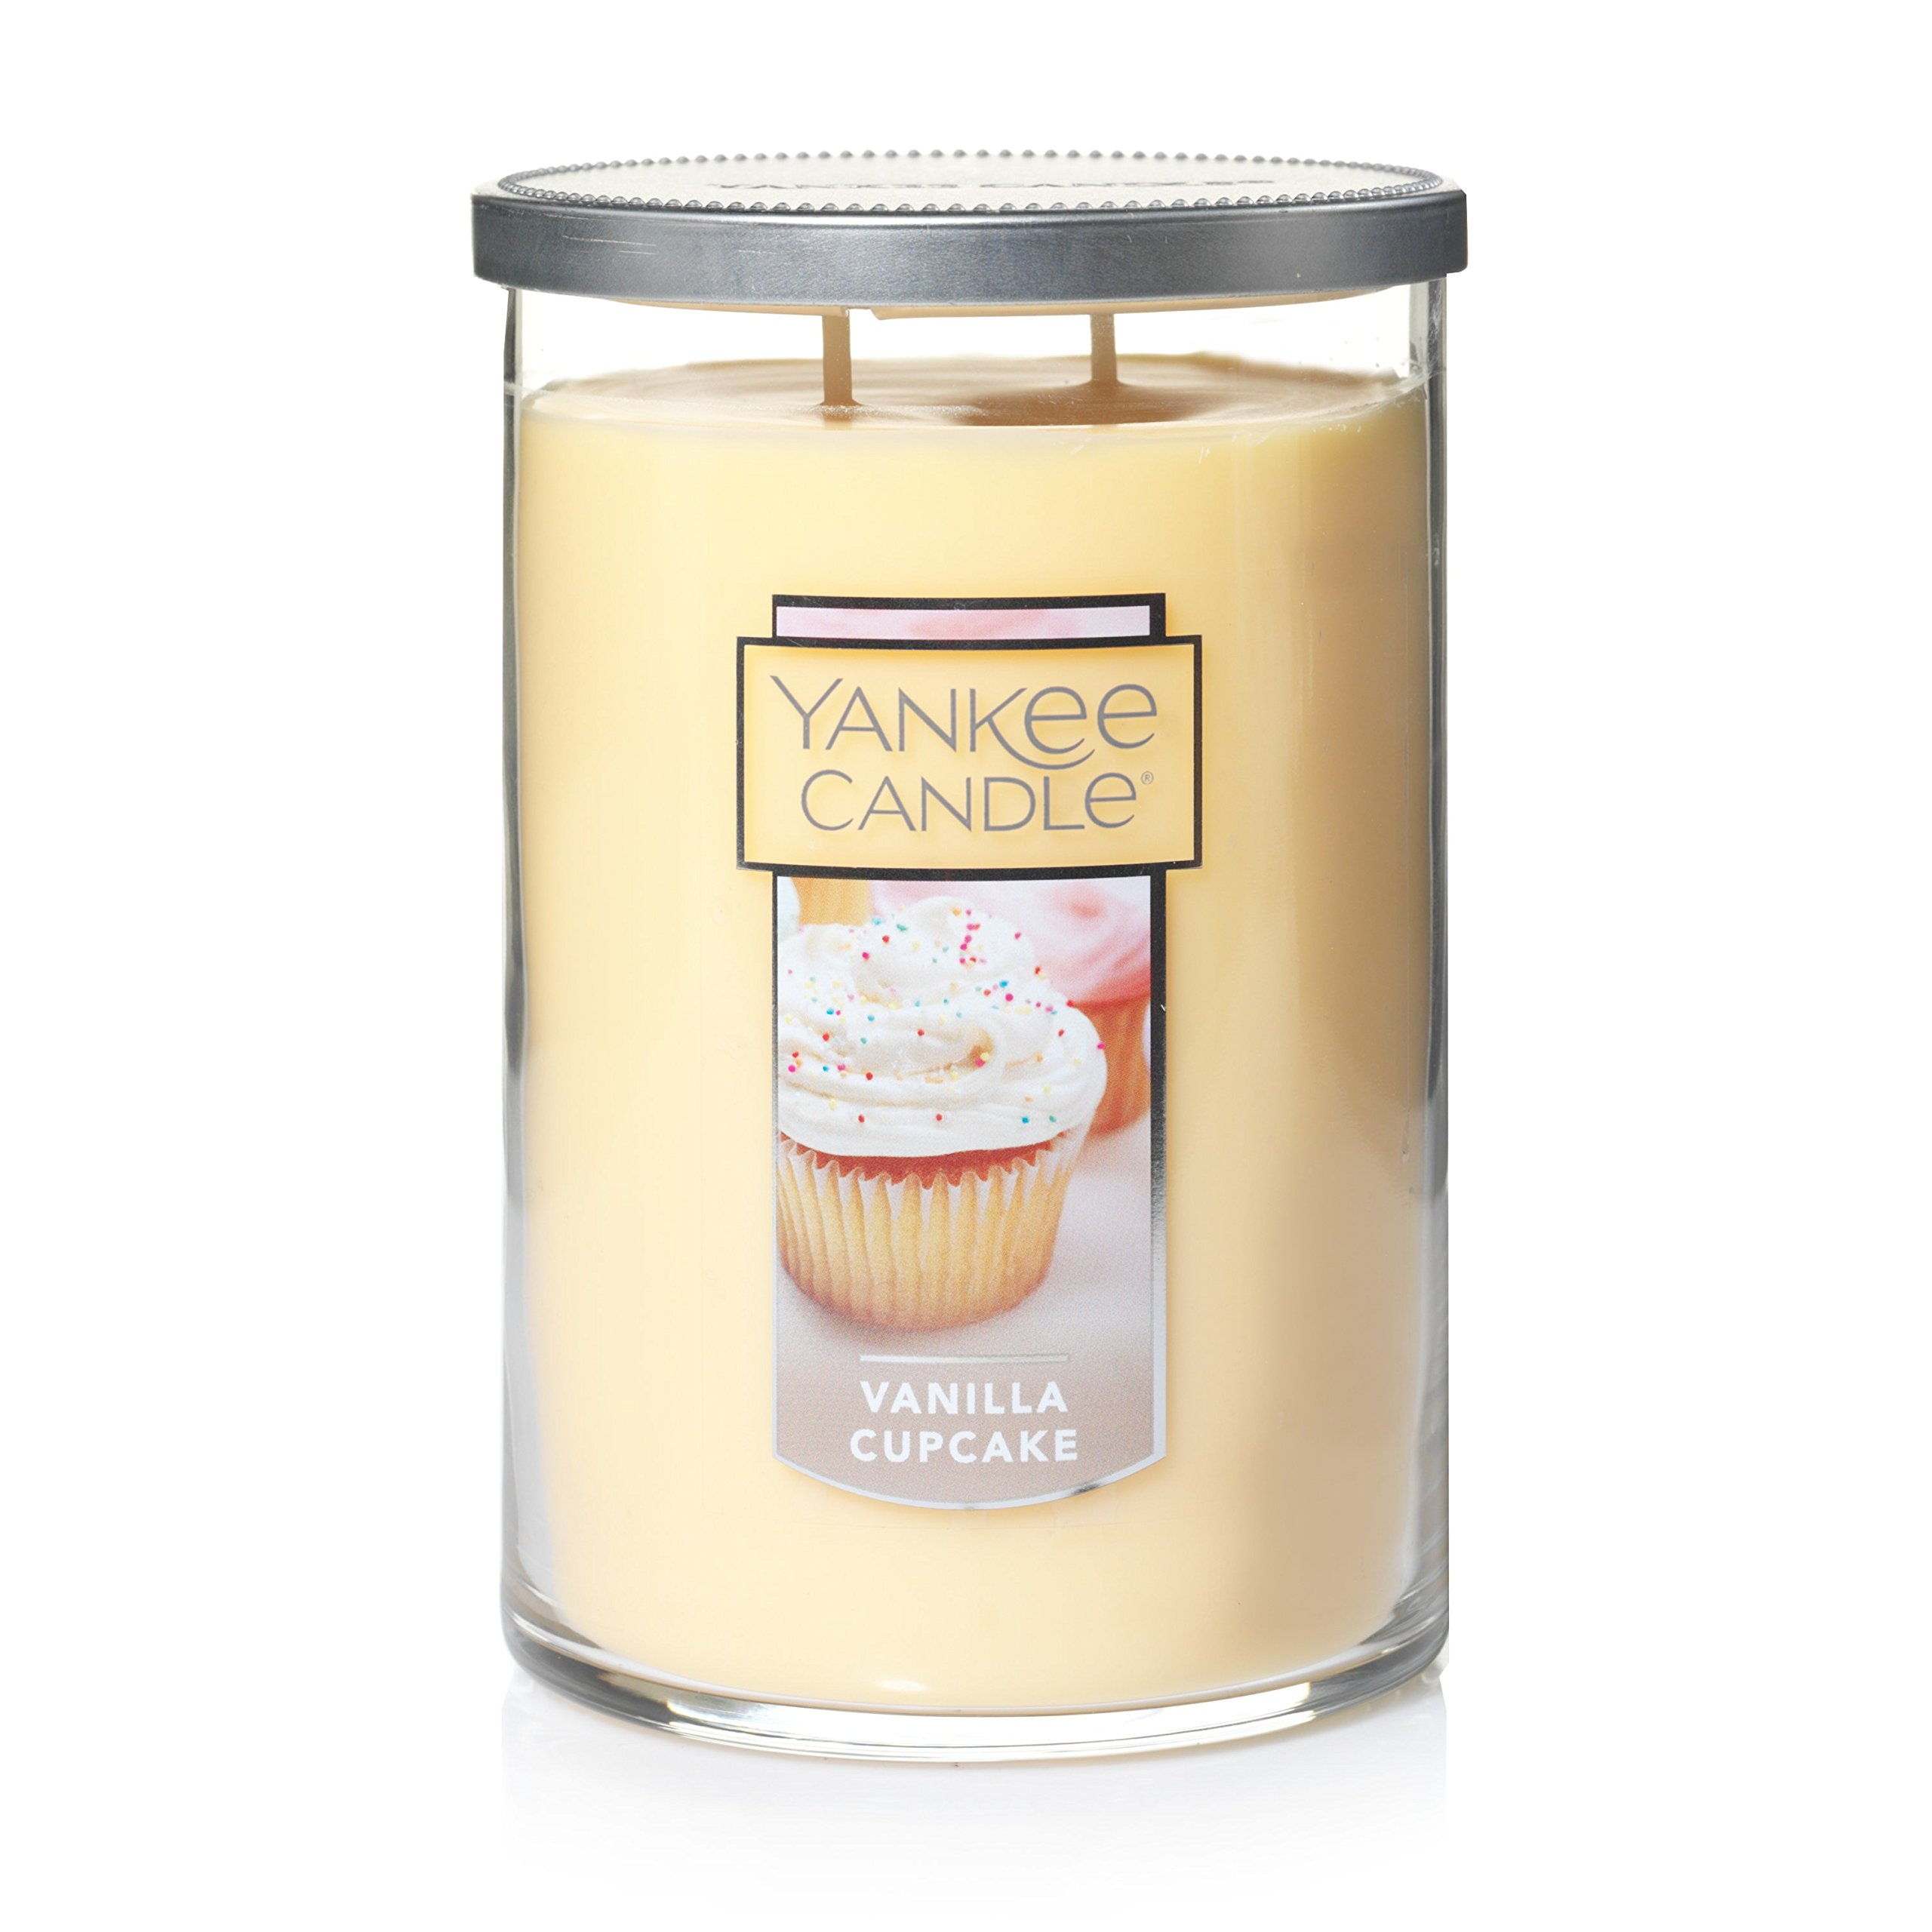 Yankee Candle Large 2-Wick Tumbler Candle, Vanilla Cupcake by Yankee Candle